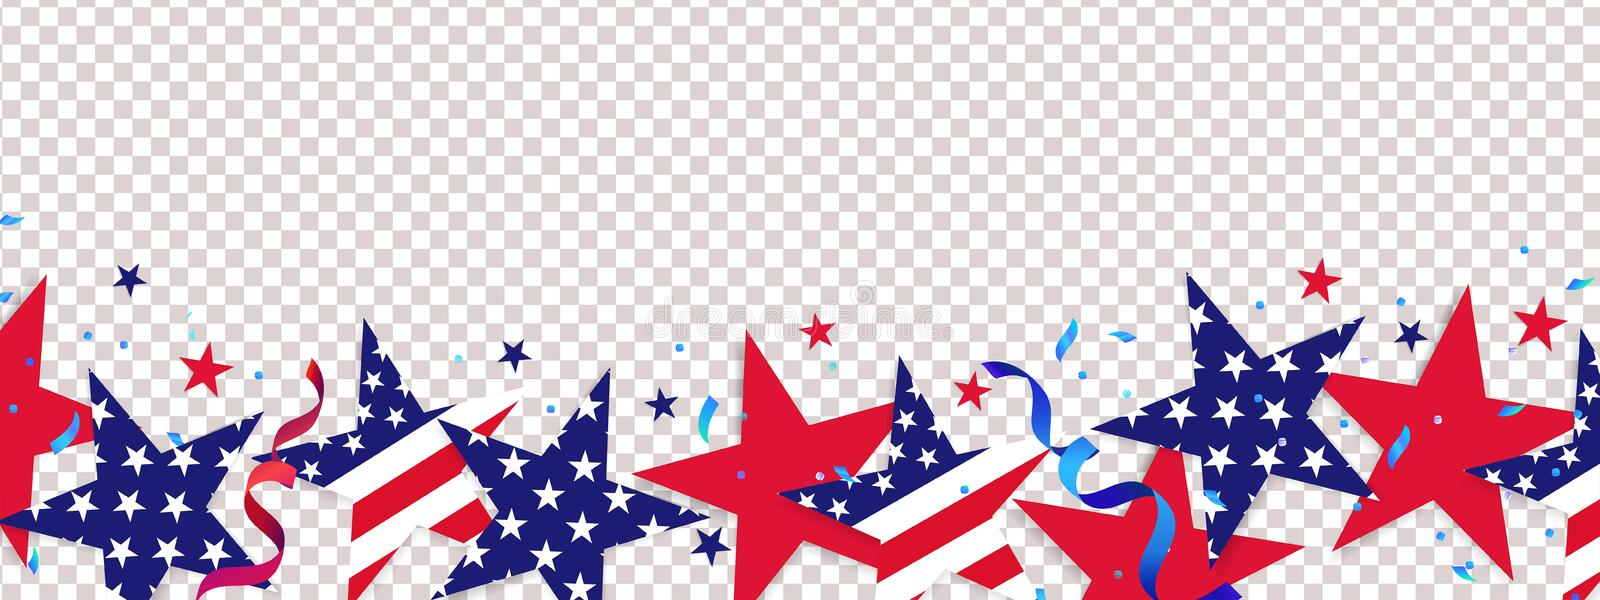 Fourth of July background. 4th of July holiday long horizontal border stock illustration